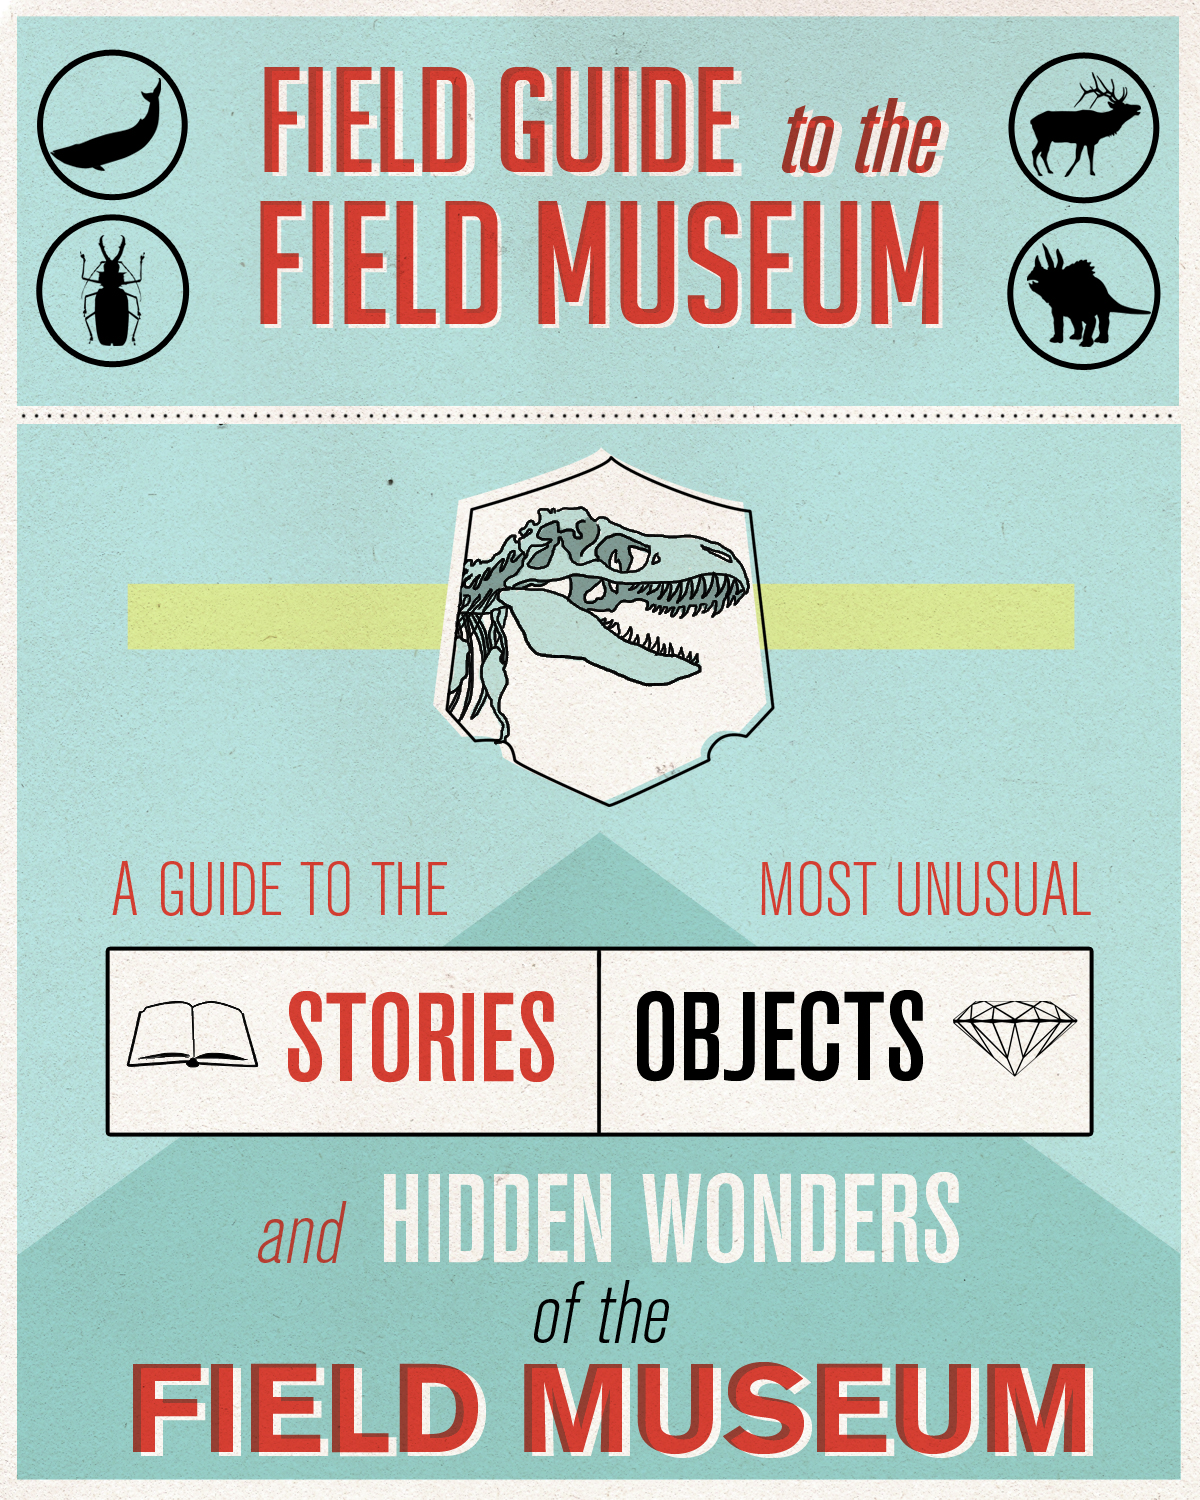 Field Guide to the Field Museum